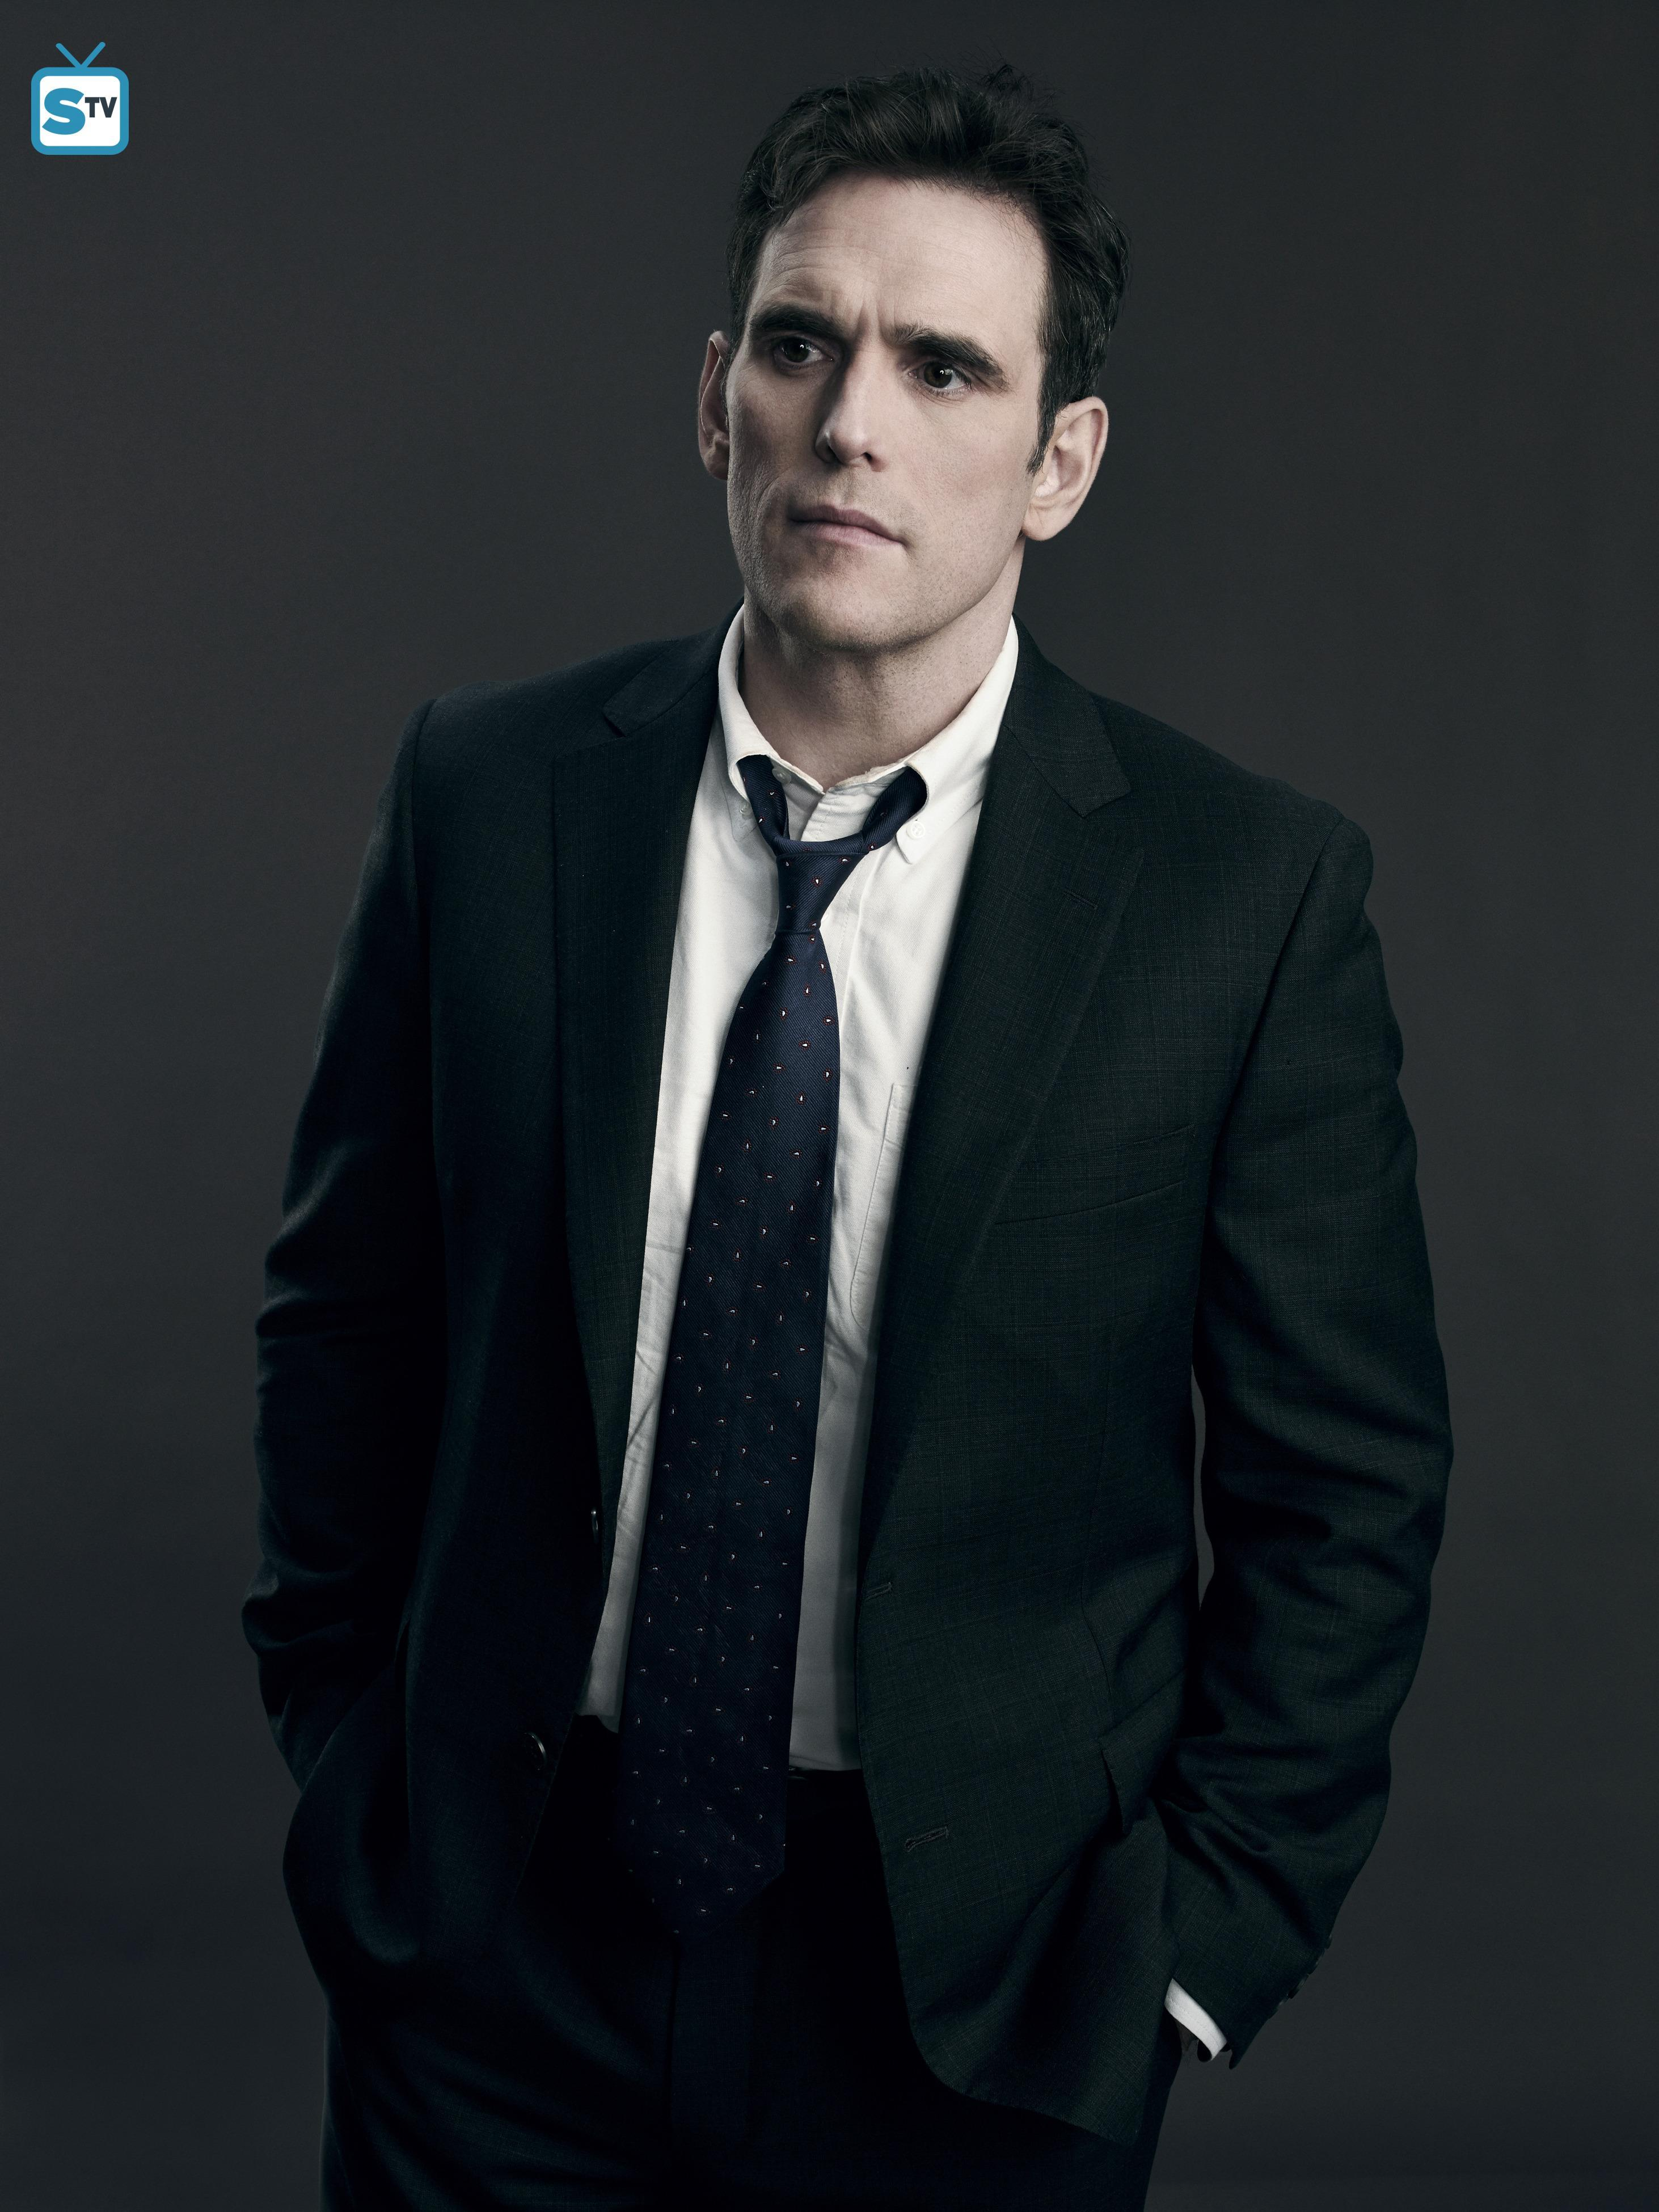 Wayward Pines image Matt Dillon as Ethan Burke HD wallpapers and